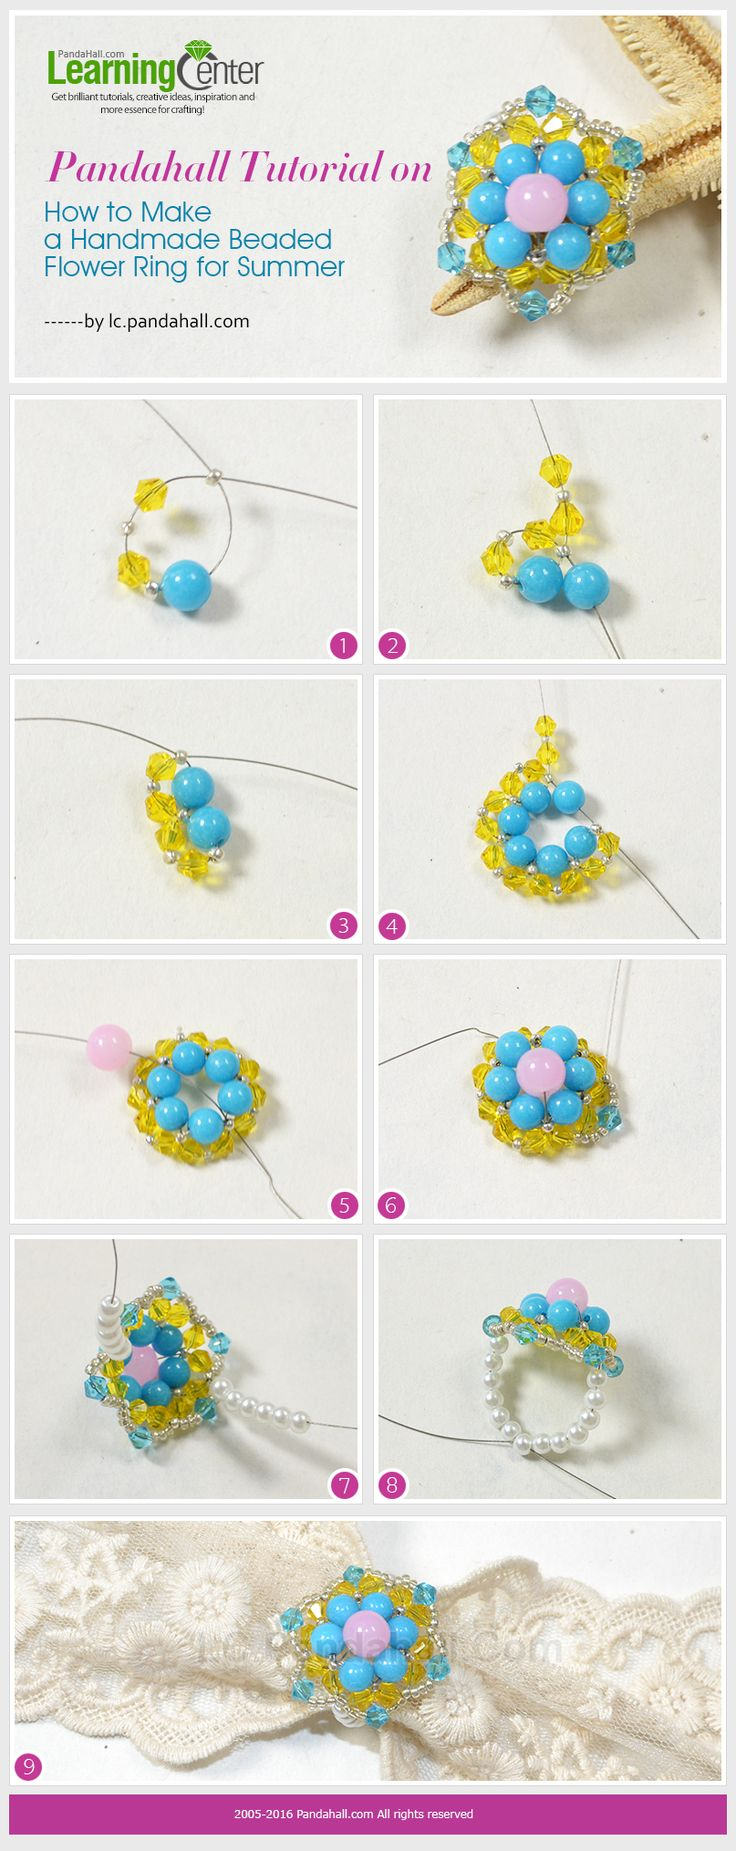 Pandahall Tutorial on How to Make a Handmade Beaded Flower Ring for Summer from LC.Pandahall.com